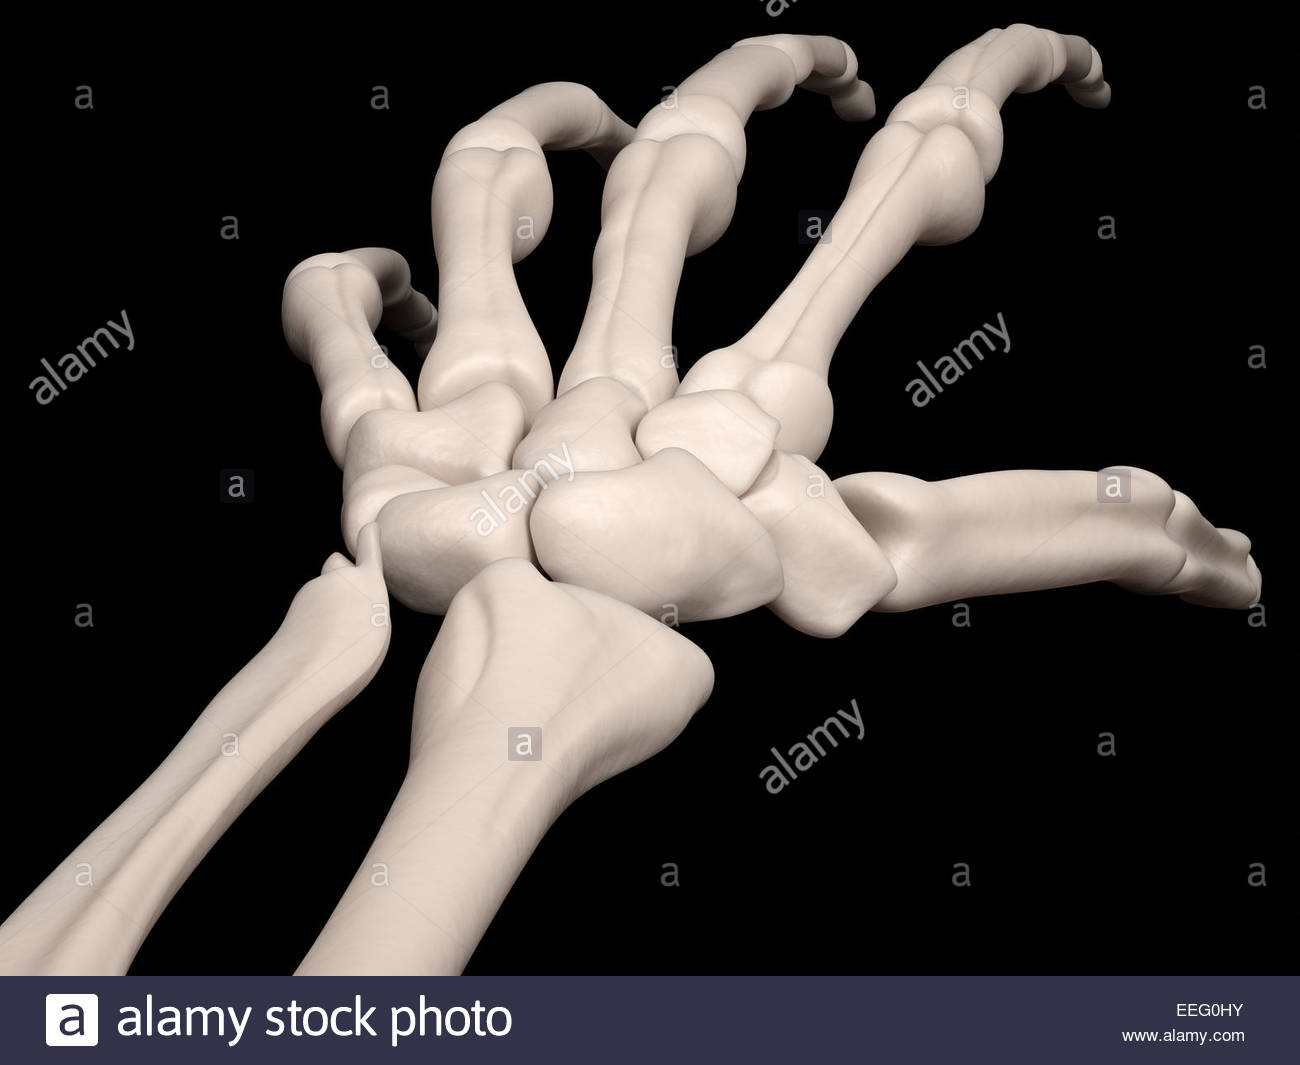 Digital medical illustration depicting a wrist without fractures. - Stock Image